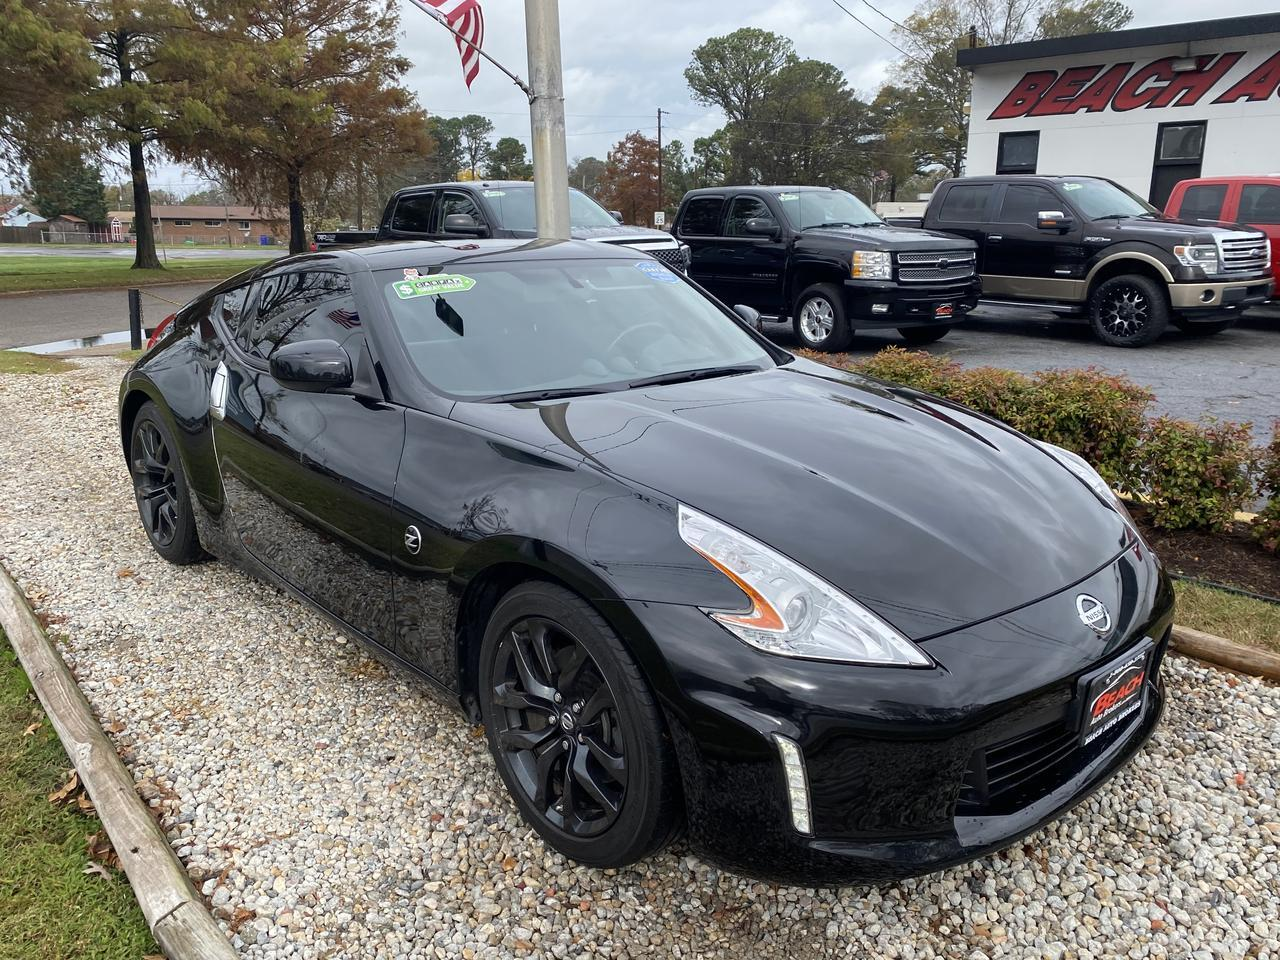 2017 NISSAN 370Z COUPE, WARRANTY, MANUAL, AUX/USB PORT, PARKING SENSORS, A/C, ONLY 10K MILES, CLEAN CARFAX! Norfolk VA